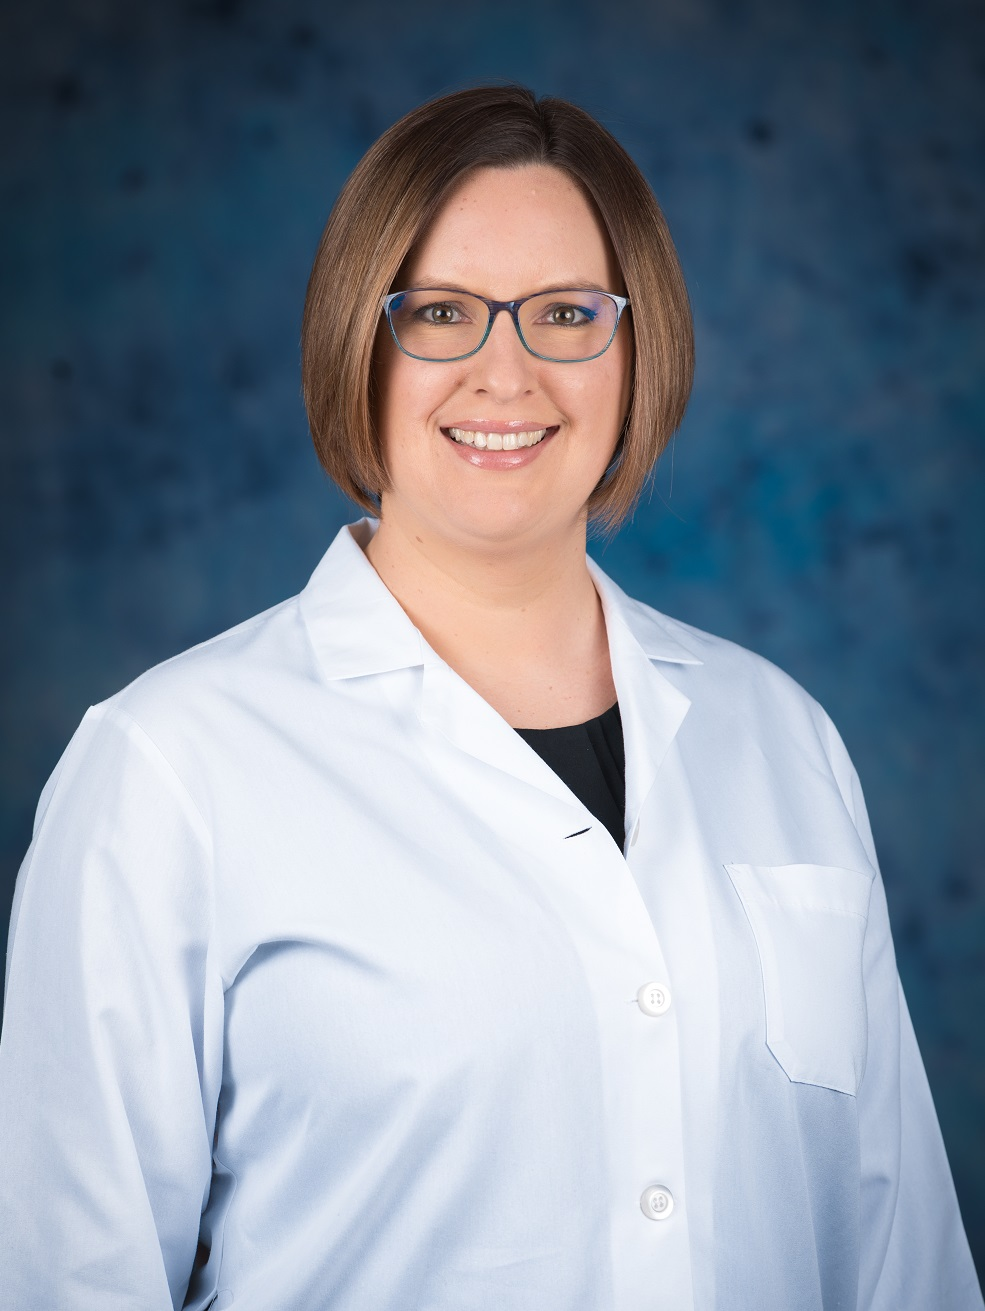 Angela Shepherd, PA-C of East Tennessee Cardiovascular Surgery Group